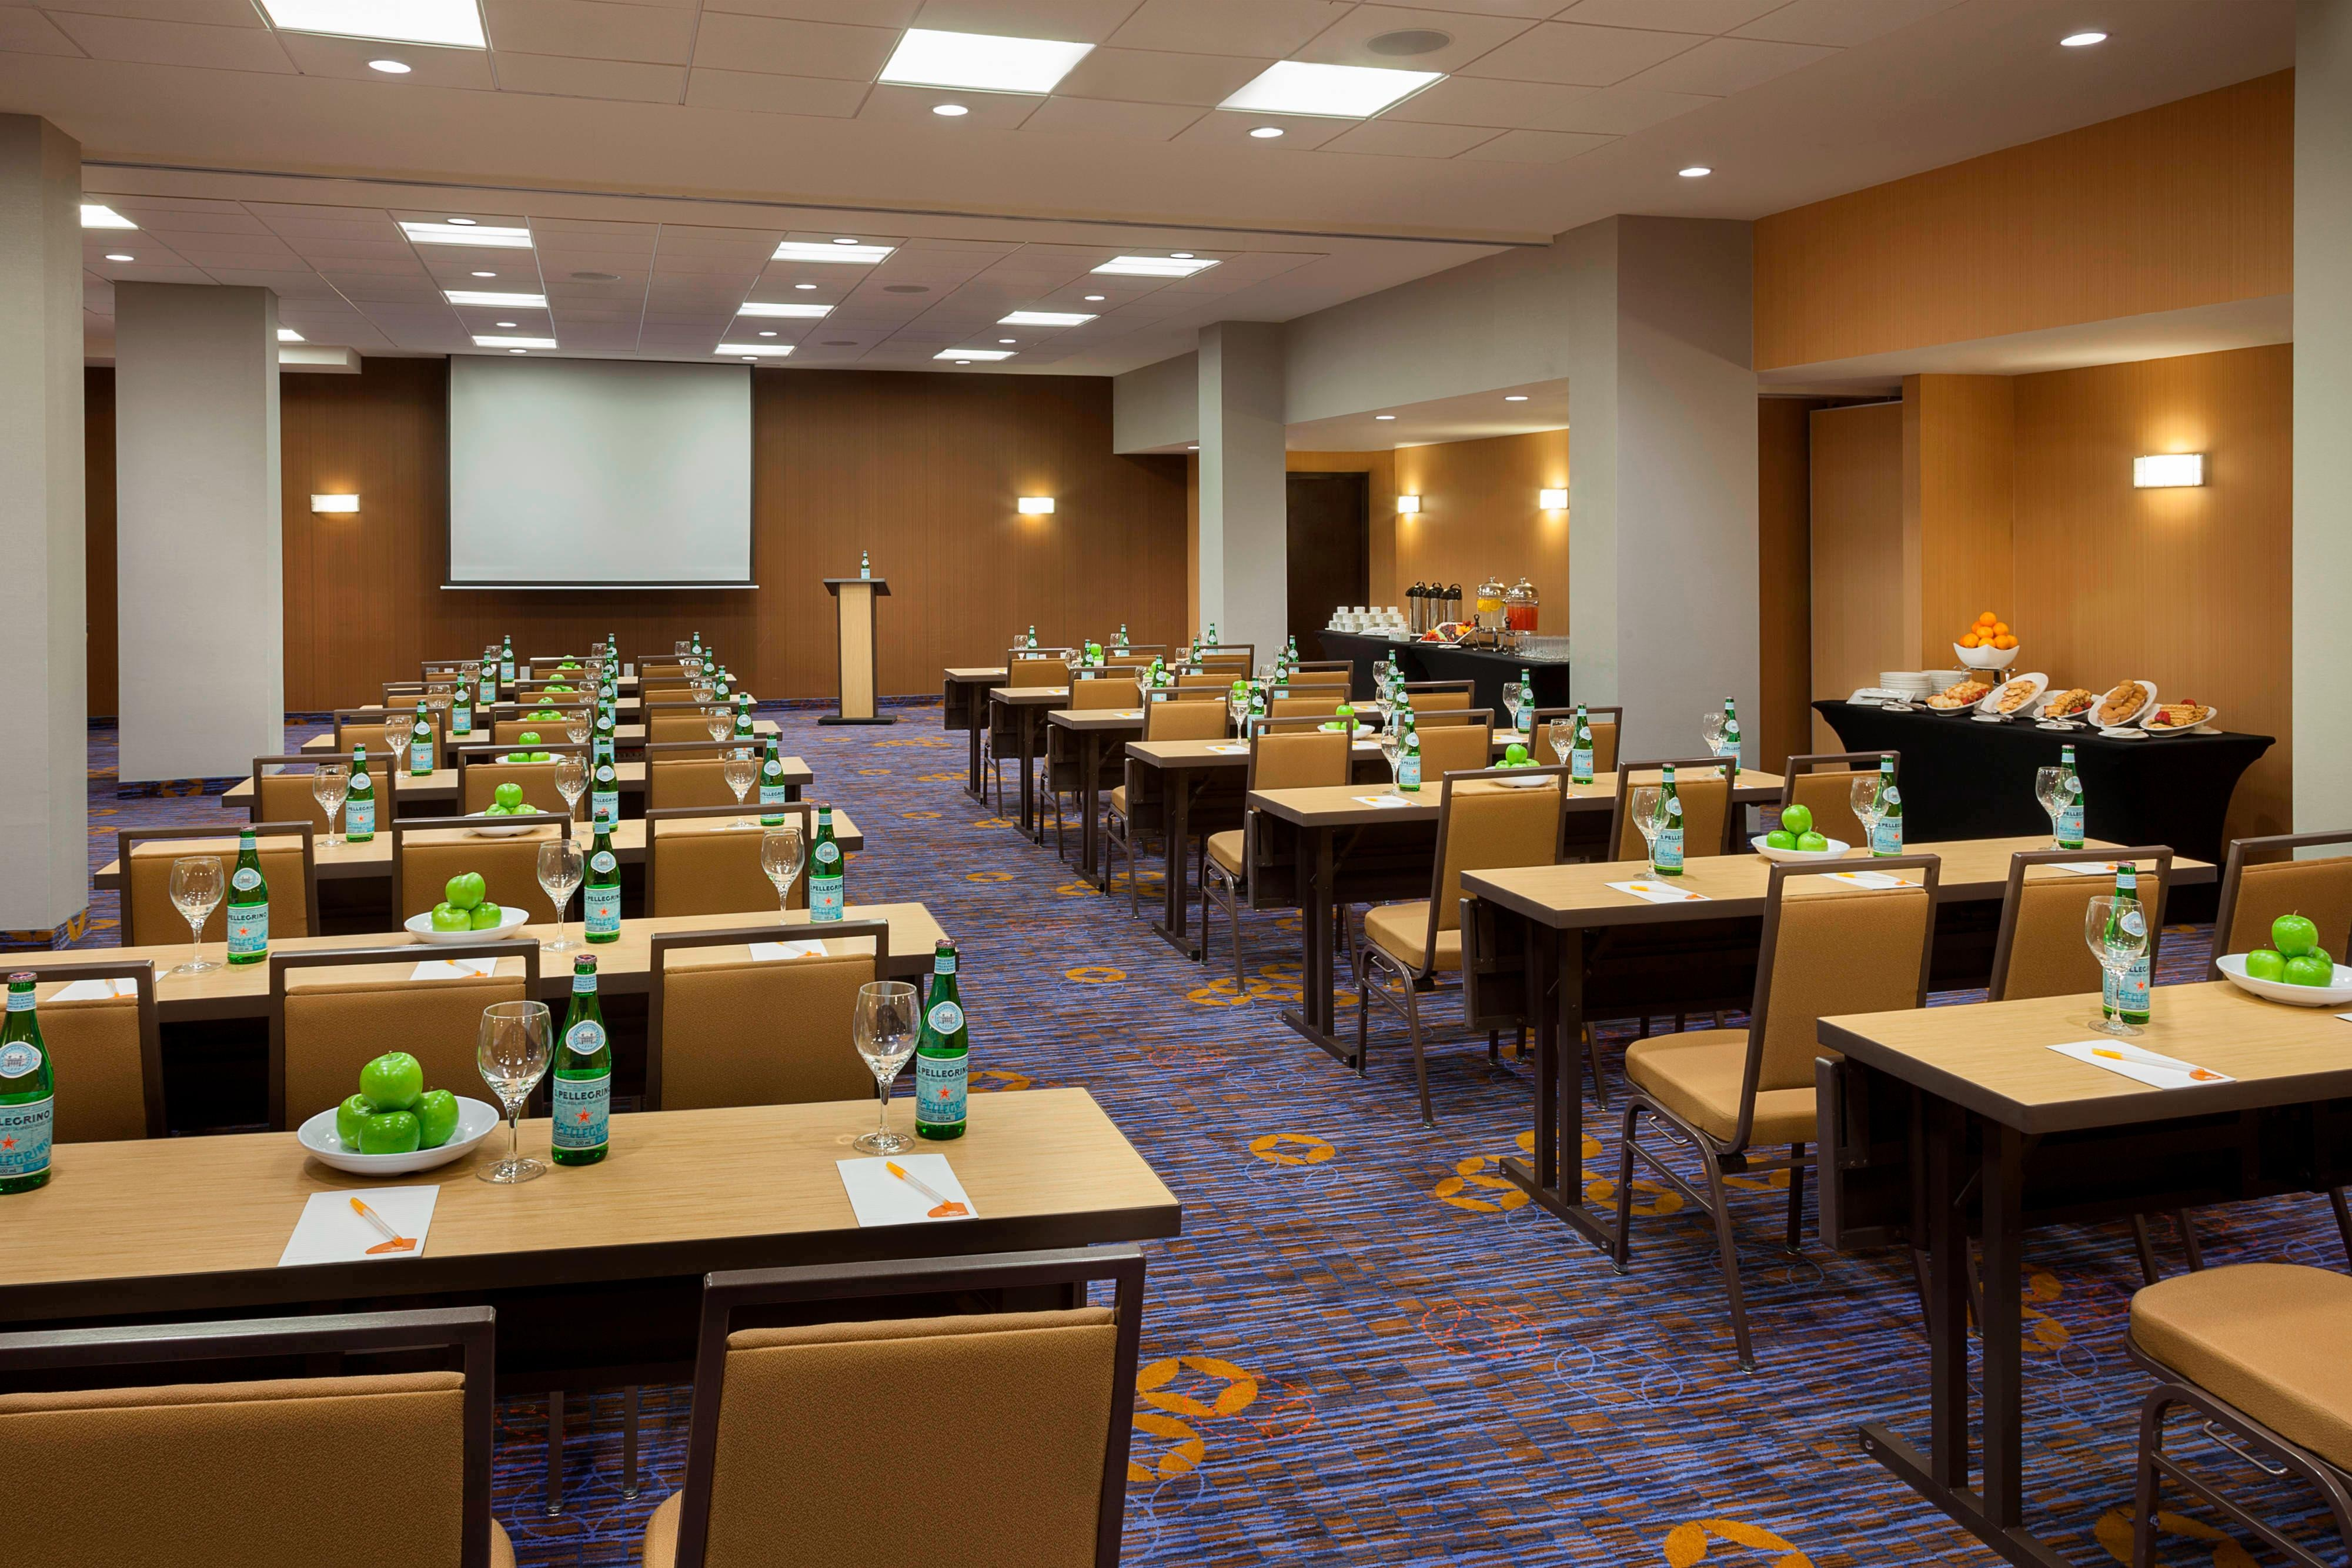 Hotel meeting room in Markham